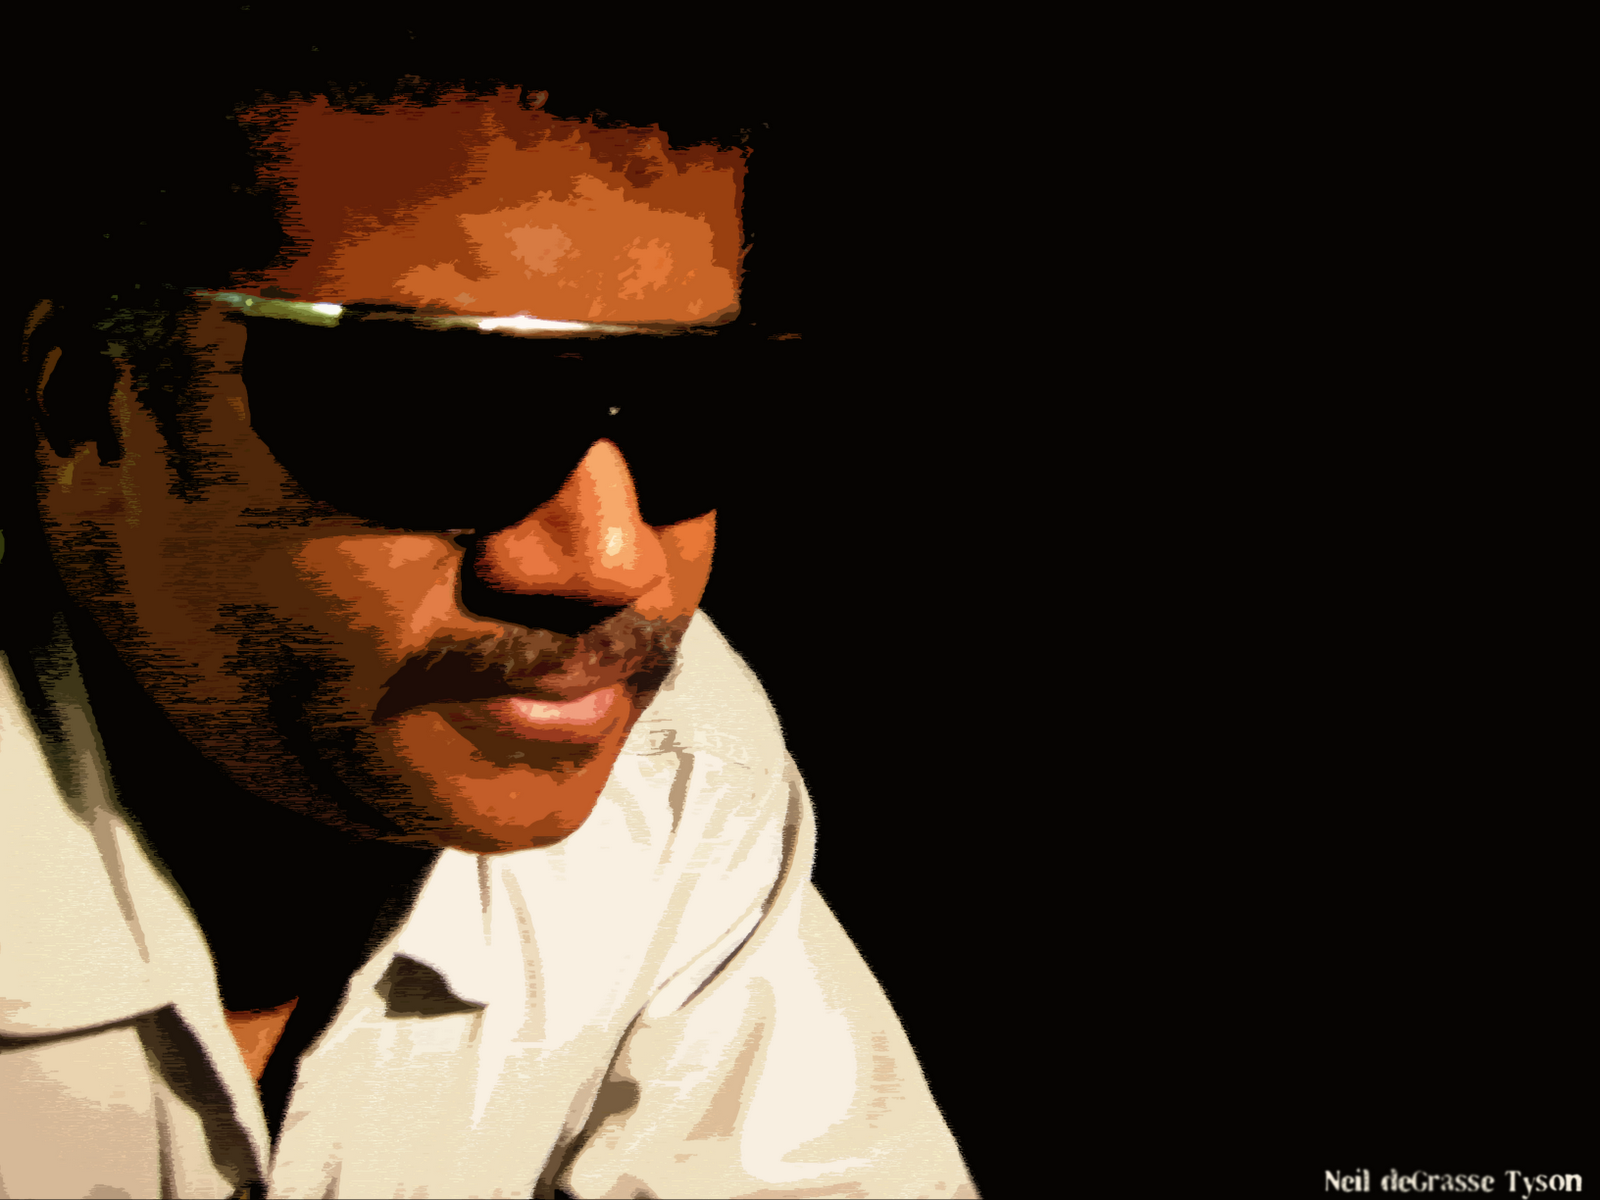 Neil deGrasse Tyson Wallpaper